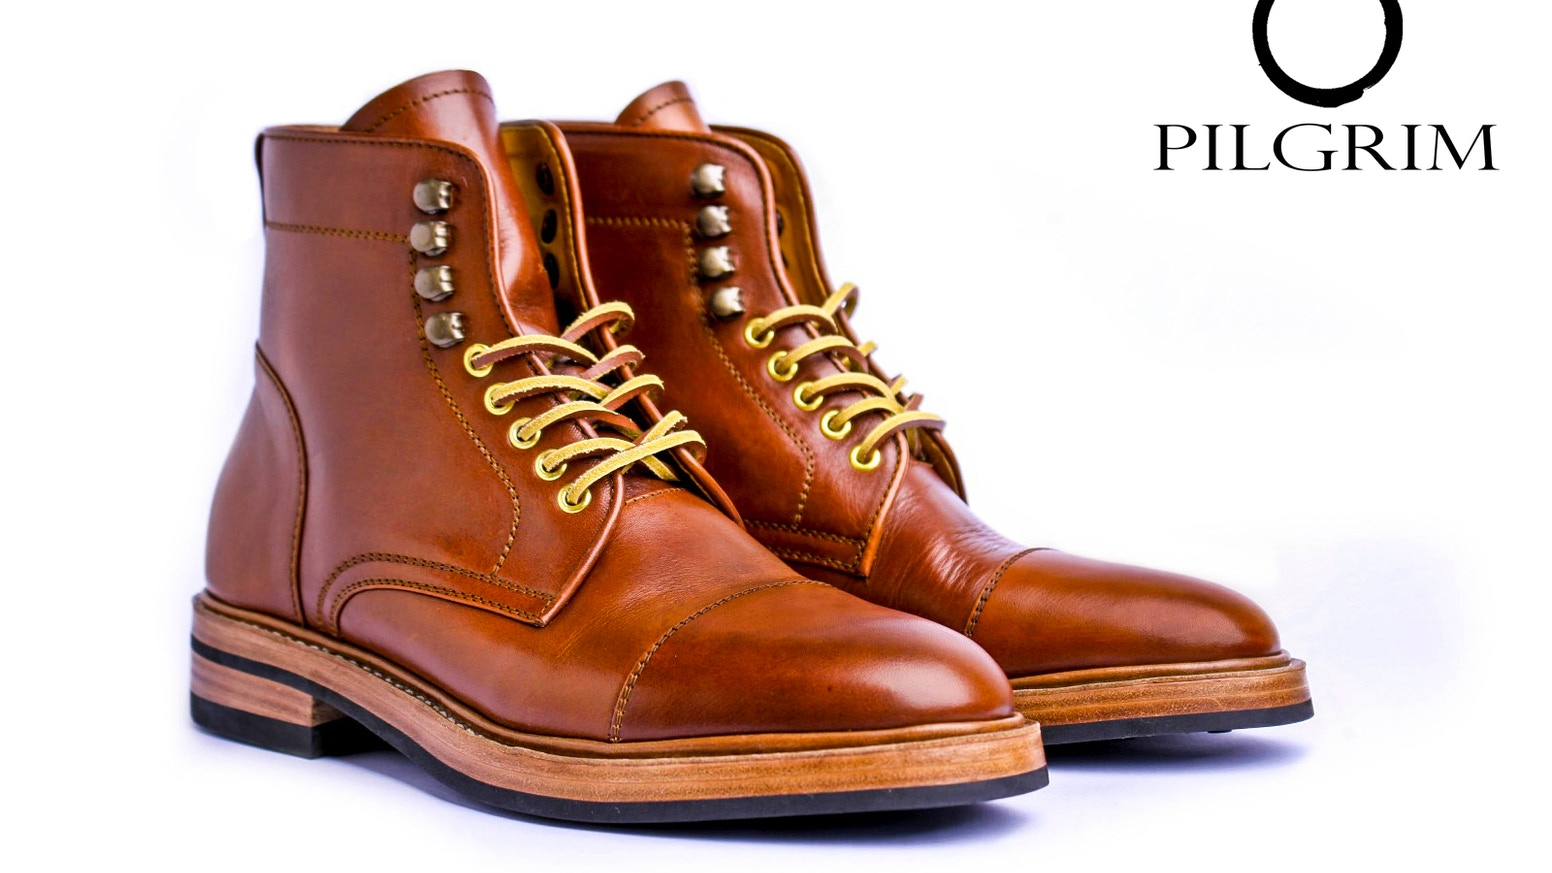 Handcrafted leather boots that is balance in aesthetic & practicality. Suitable for casual or formal occasions. Customization available. You can still participate by clicking the button below. Cheers